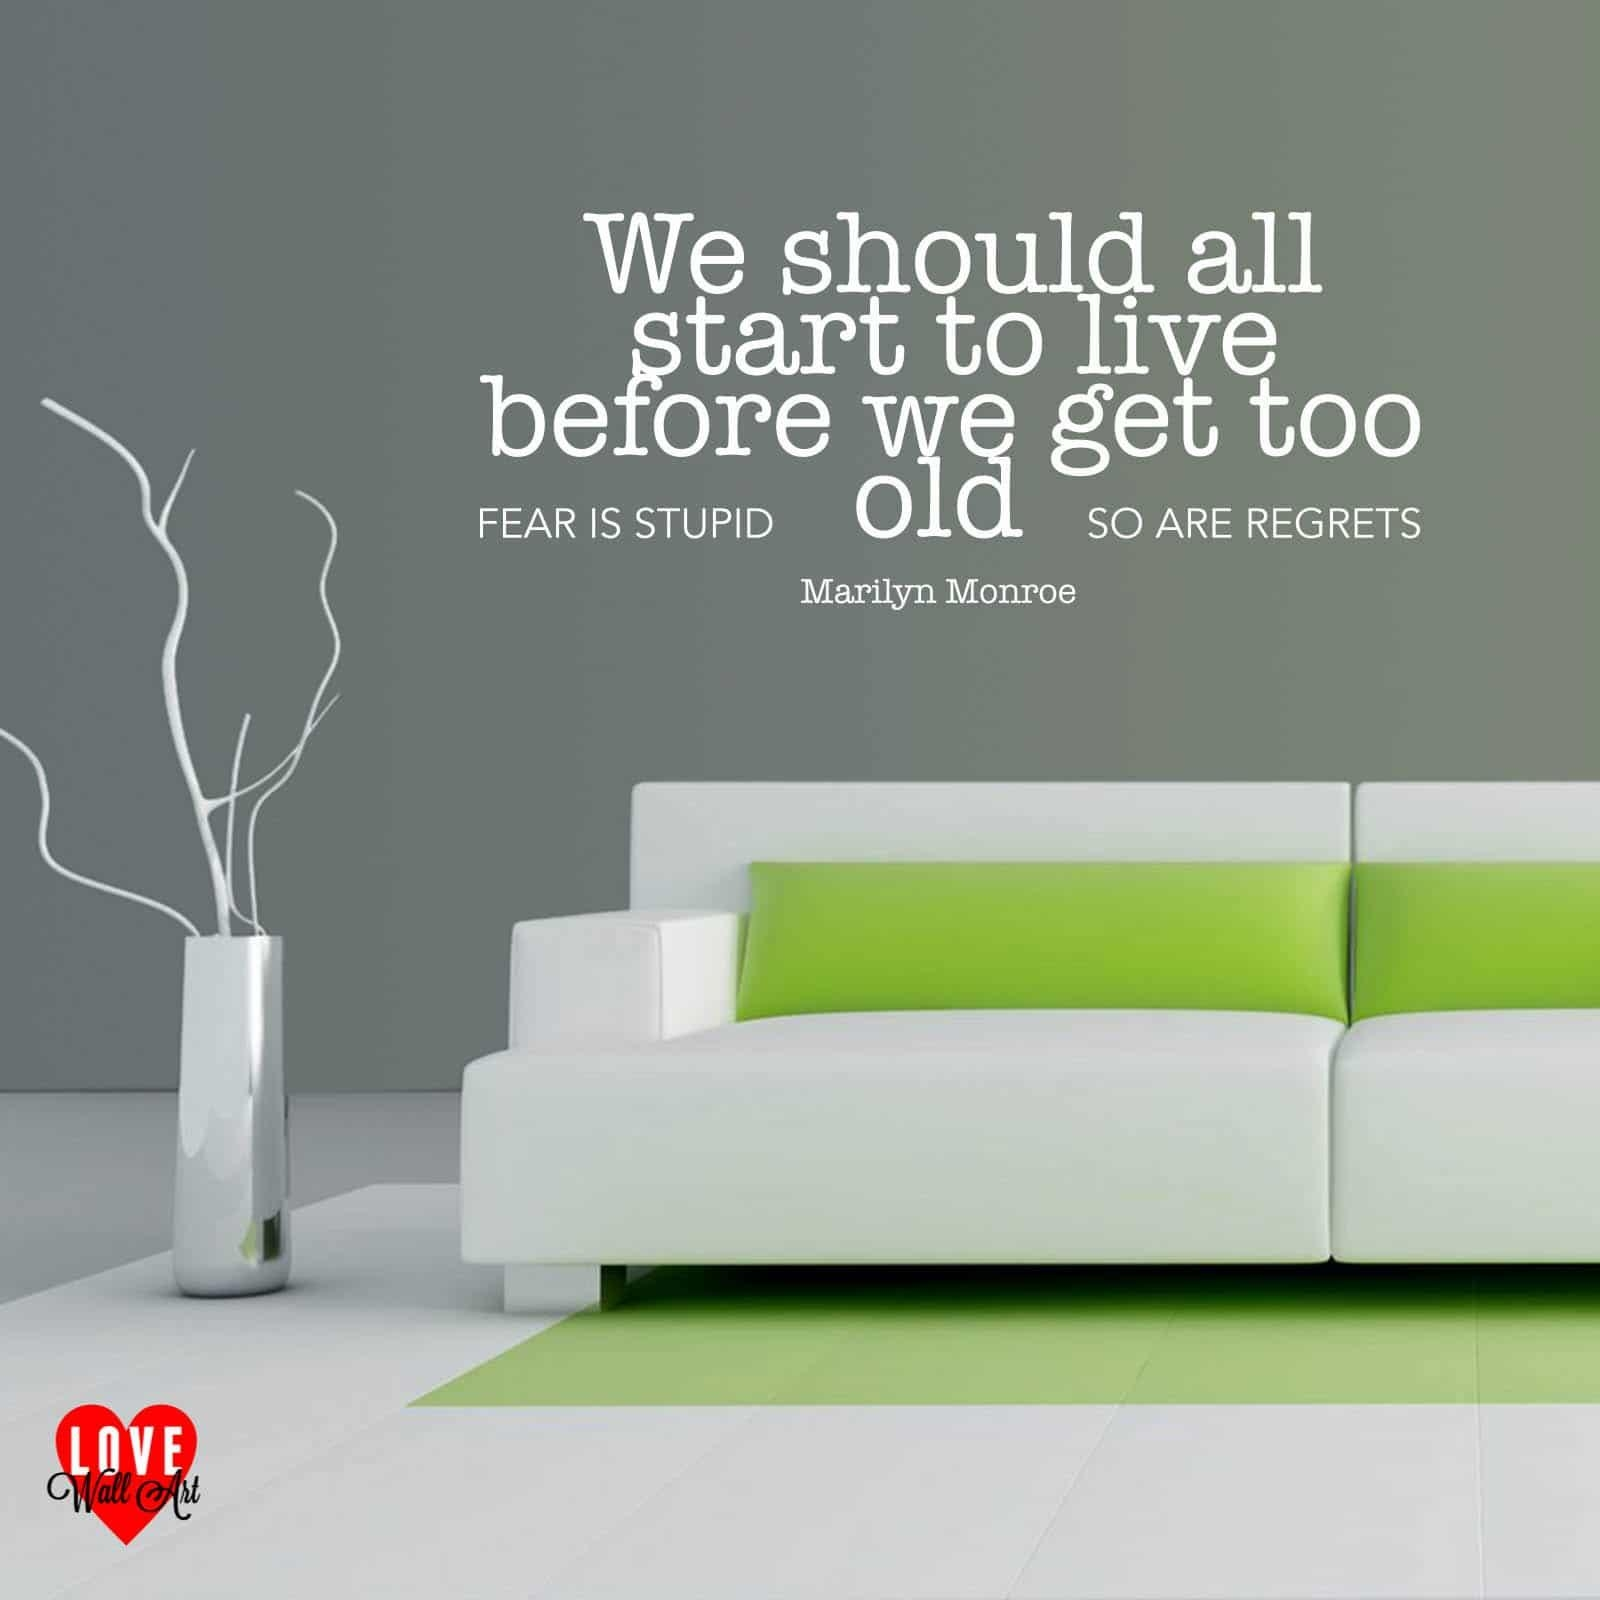 We Should All Start To Live Marilyn Monroe Wall Art Quote Wall Sticker With Regard To Marilyn Monroe Wall Art Quotes (View 6 of 20)